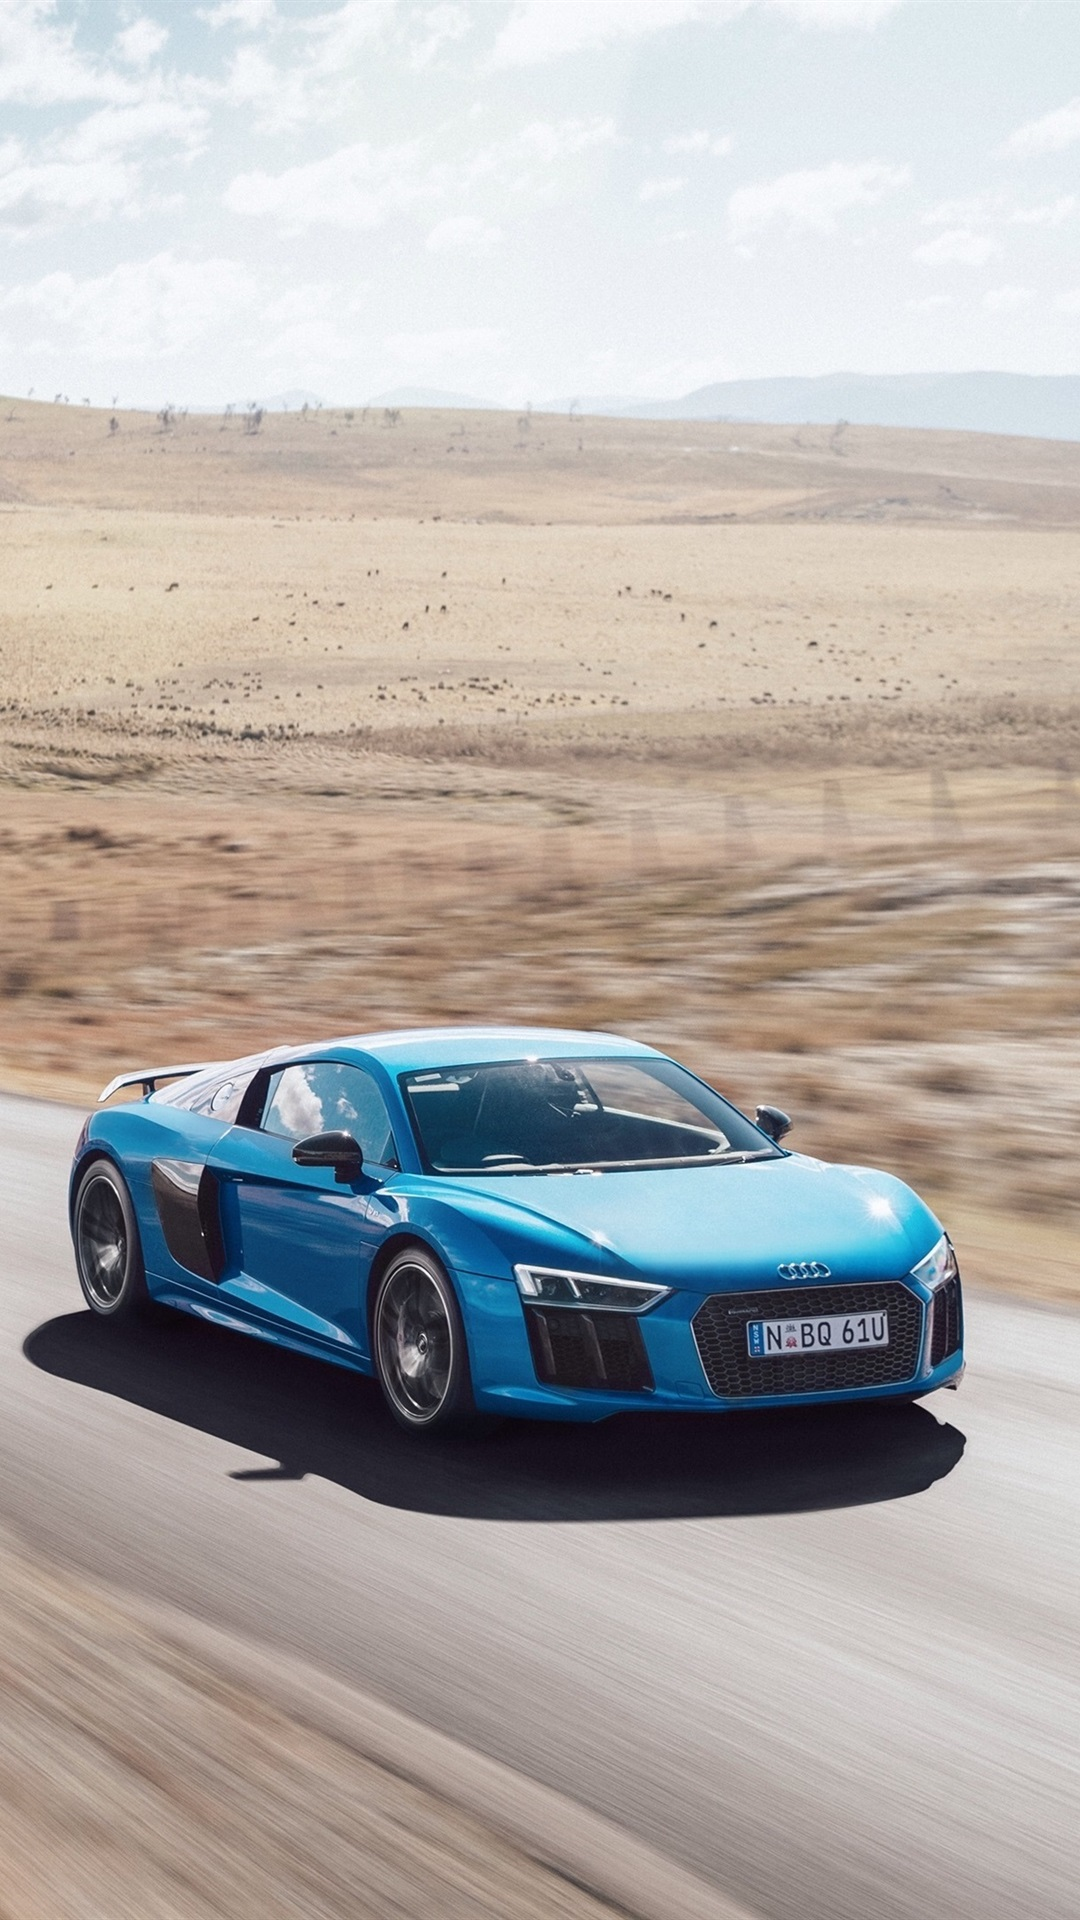 Audi R8 V10 Plus Blue Car High Speed 1080x1920 Iphone 8 7 6 6s Plus Wallpaper Background Picture Image